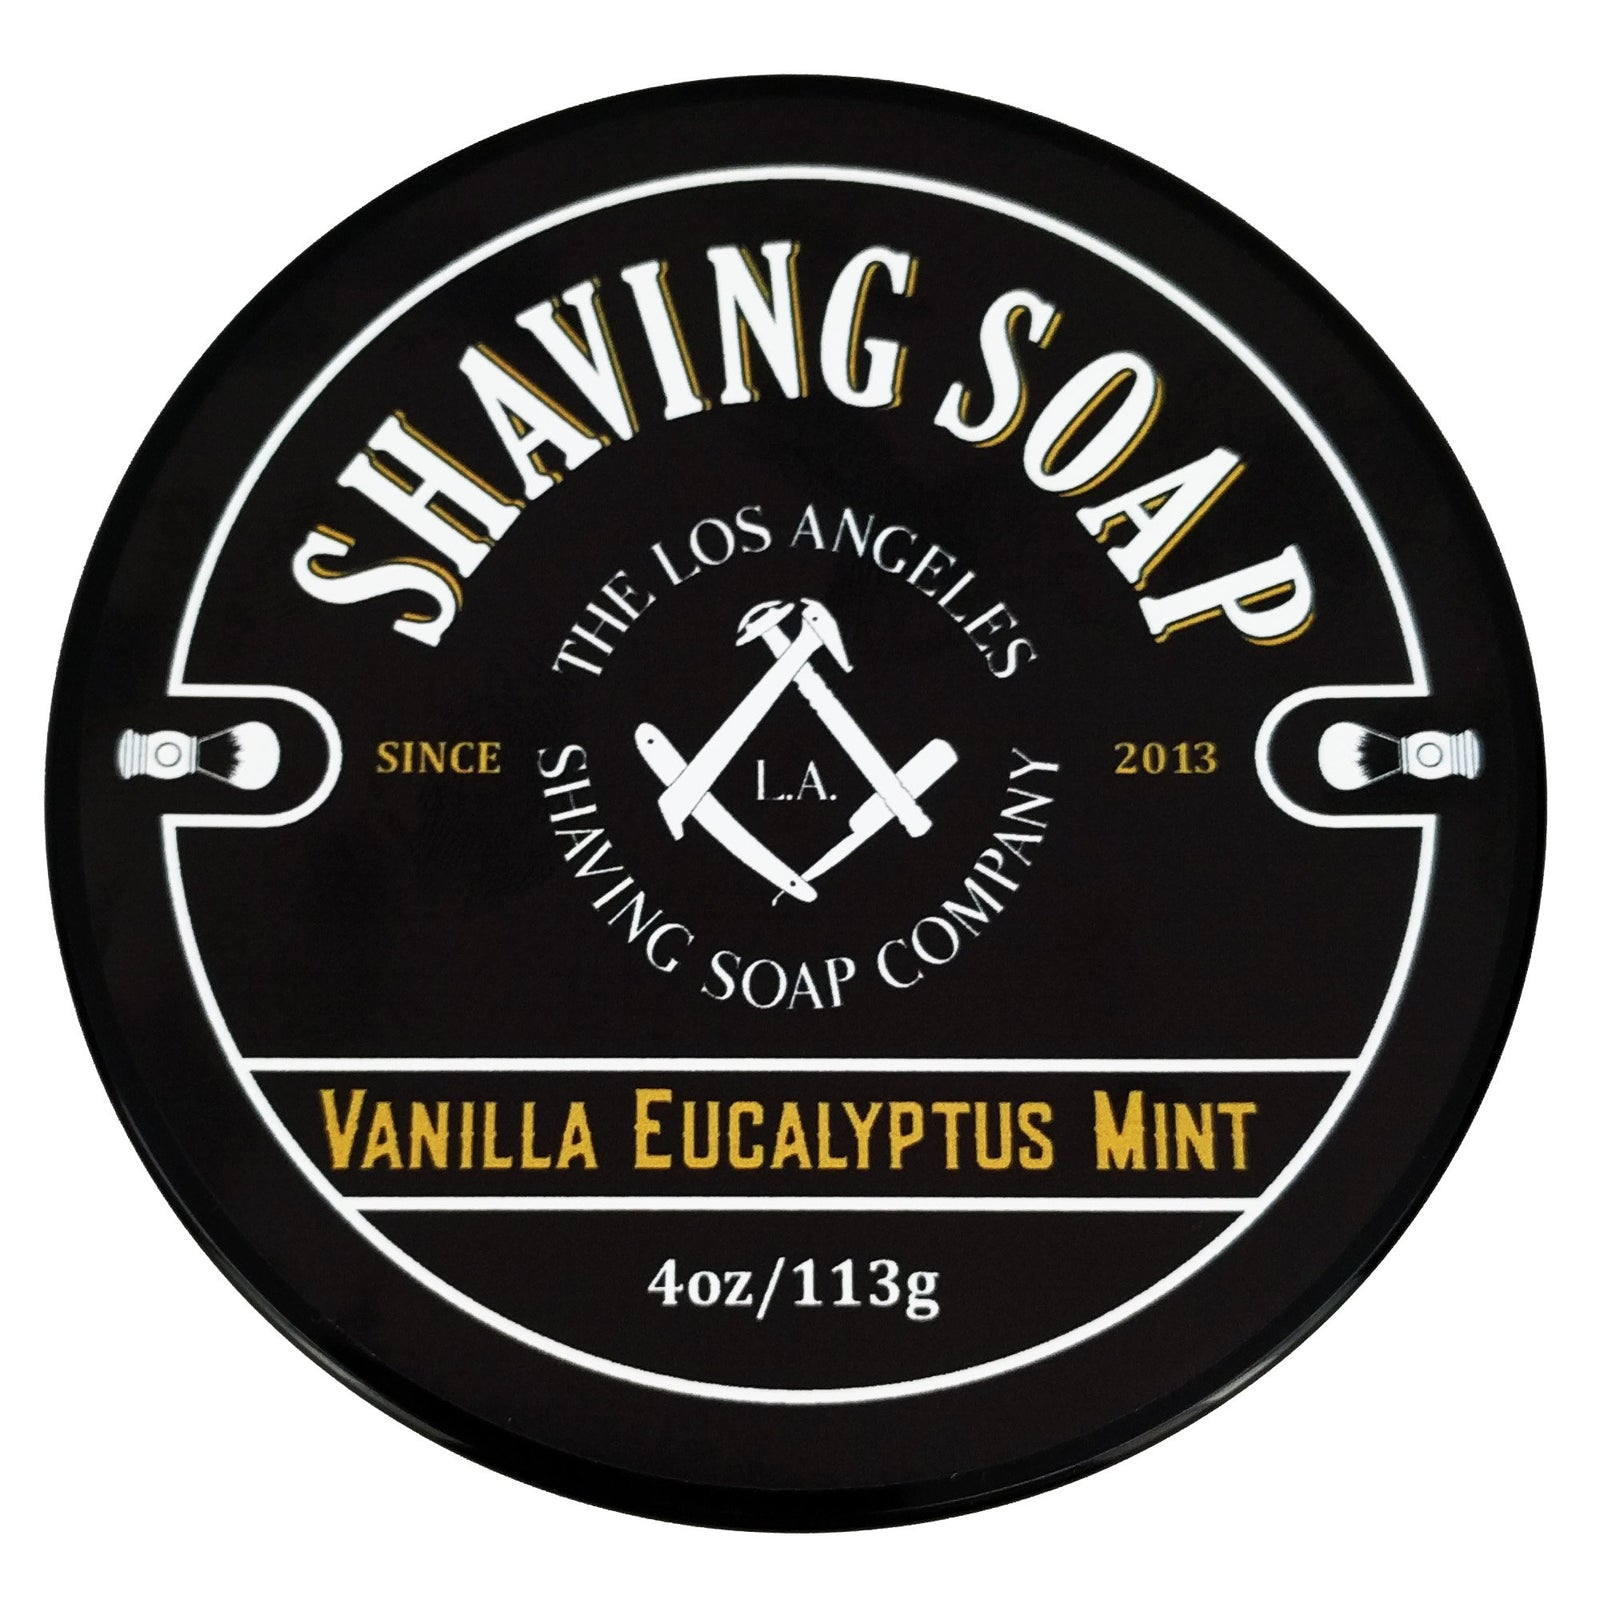 LA Shaving Soap Co - Vanilla/Eucalyptus/Mint Shaving Soap